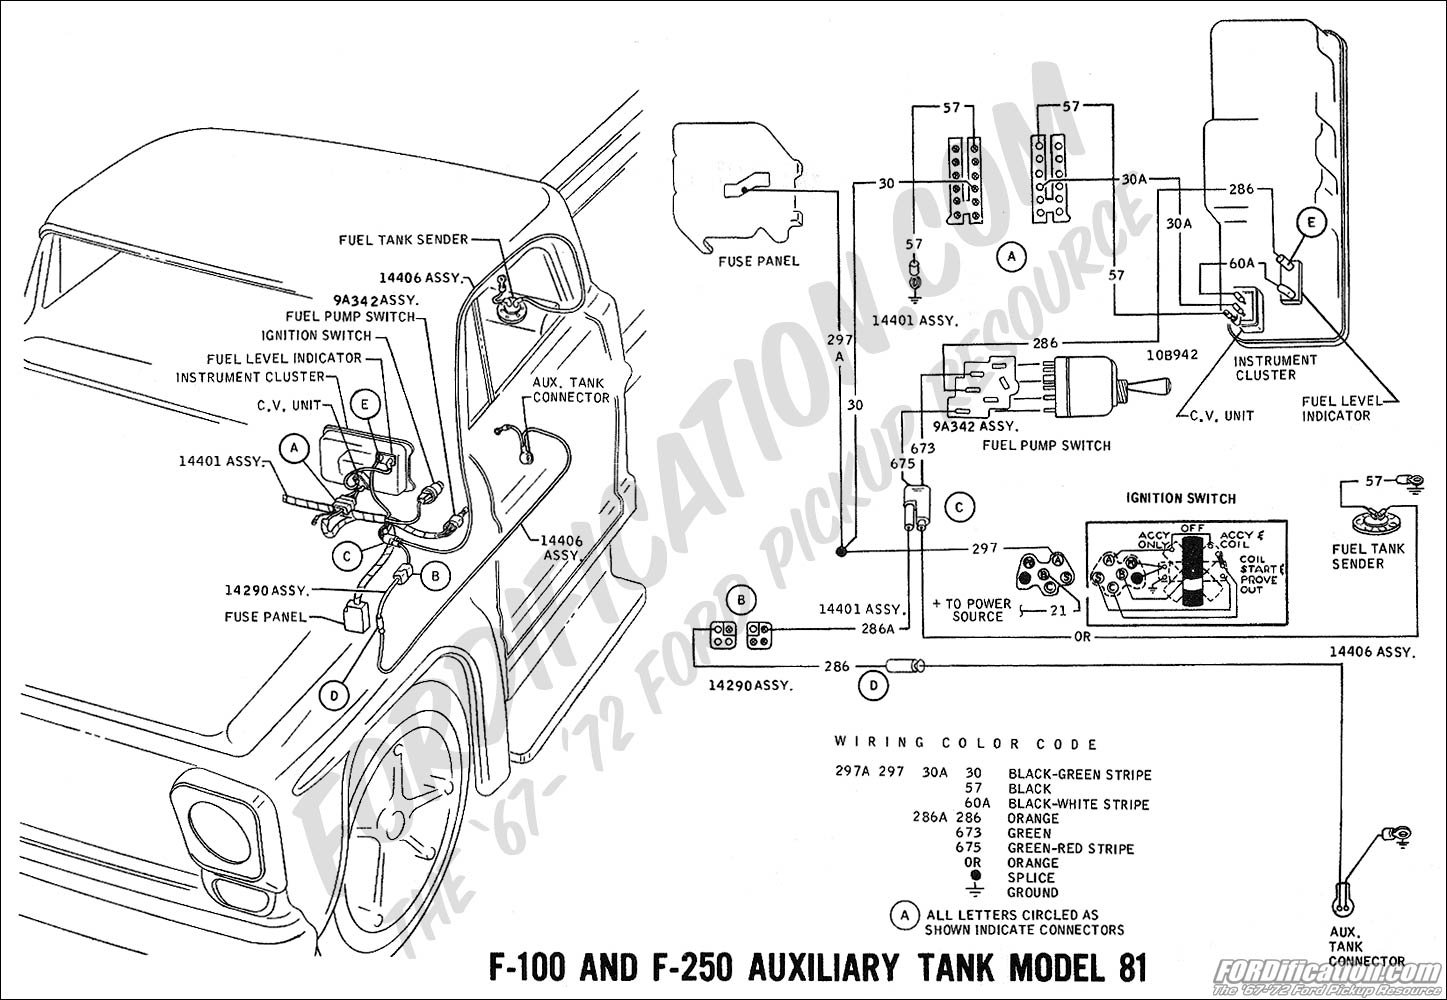 hight resolution of 1969 ford pickup fuse box simple wiring schema 1978 ford f100 1969 ford f100 fuse box